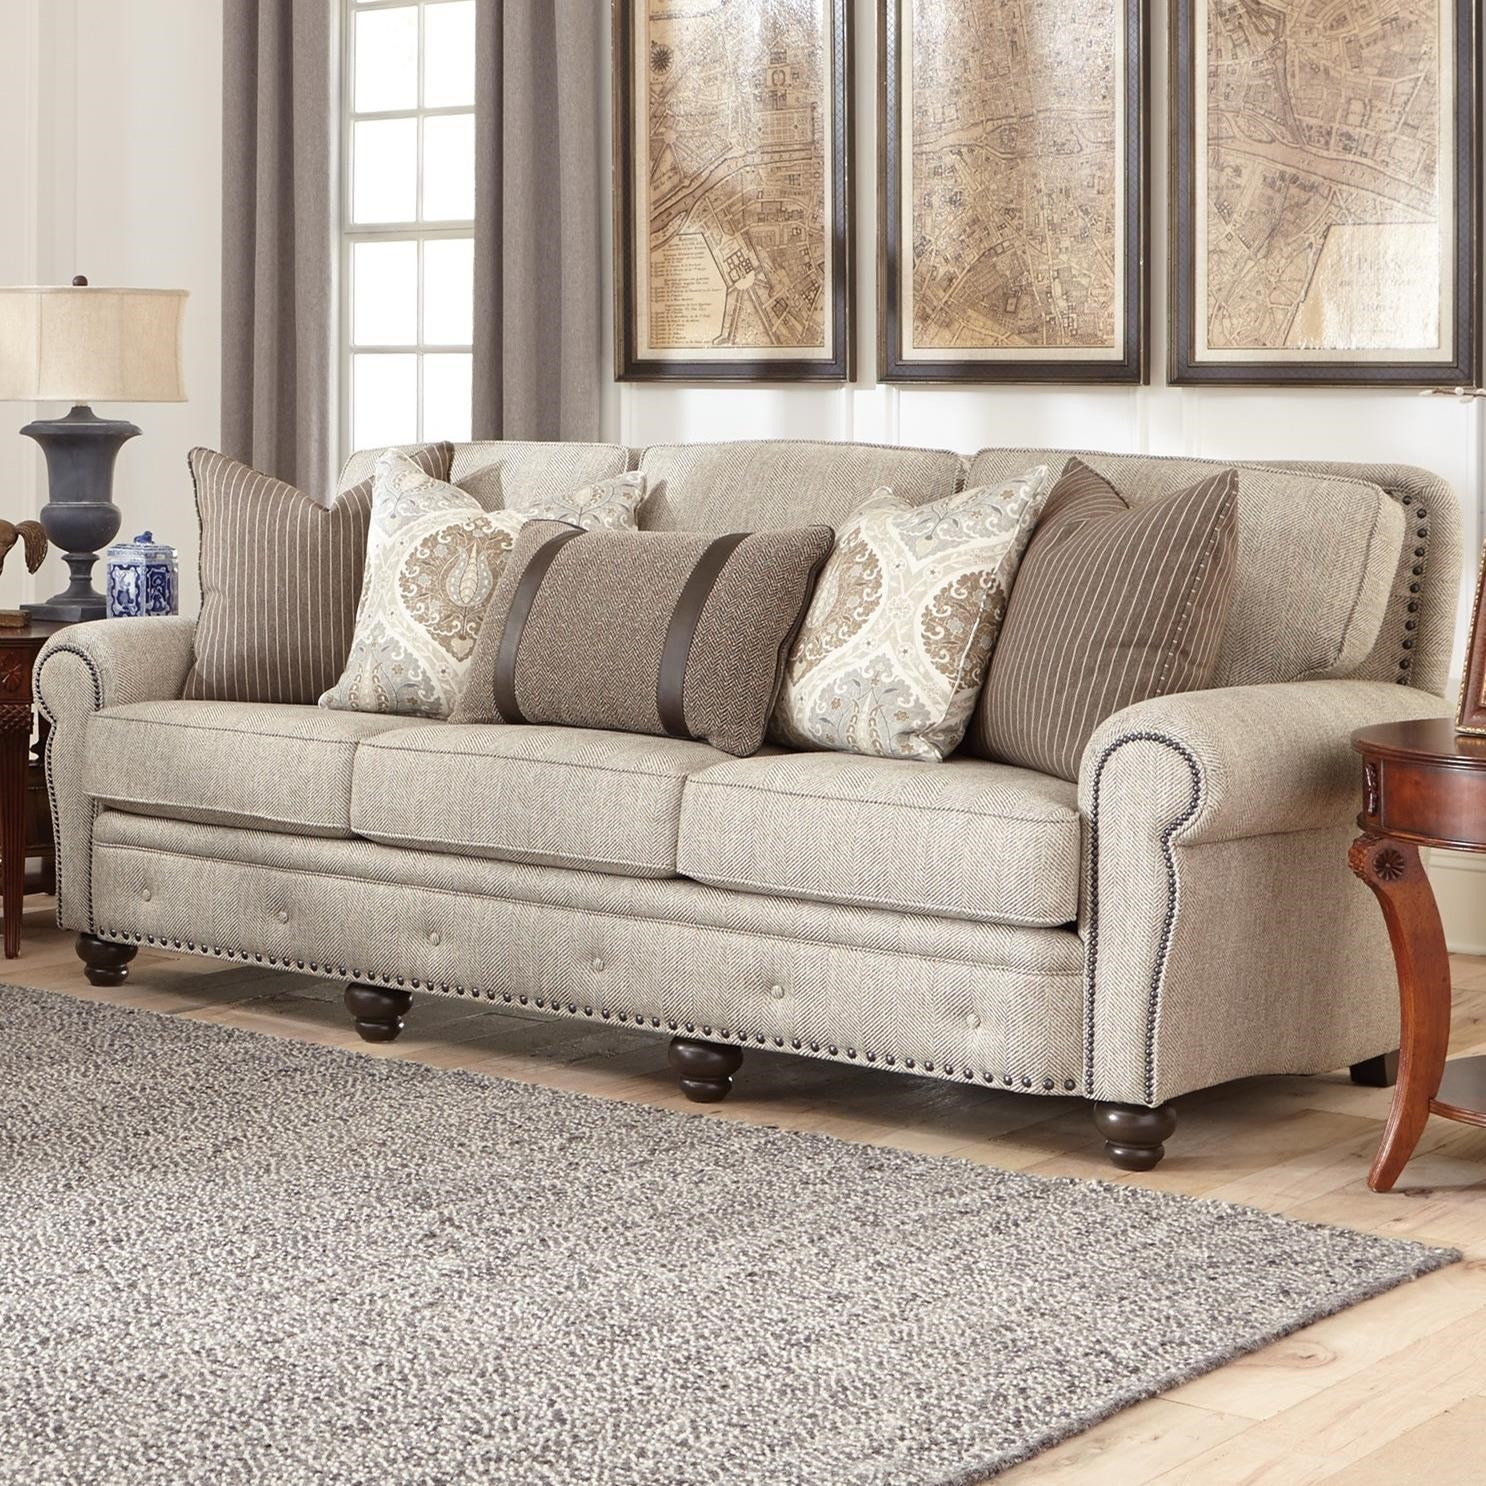 Delicieux Smith Brothers 237 Traditional Large Sofa With Nailhead Trim